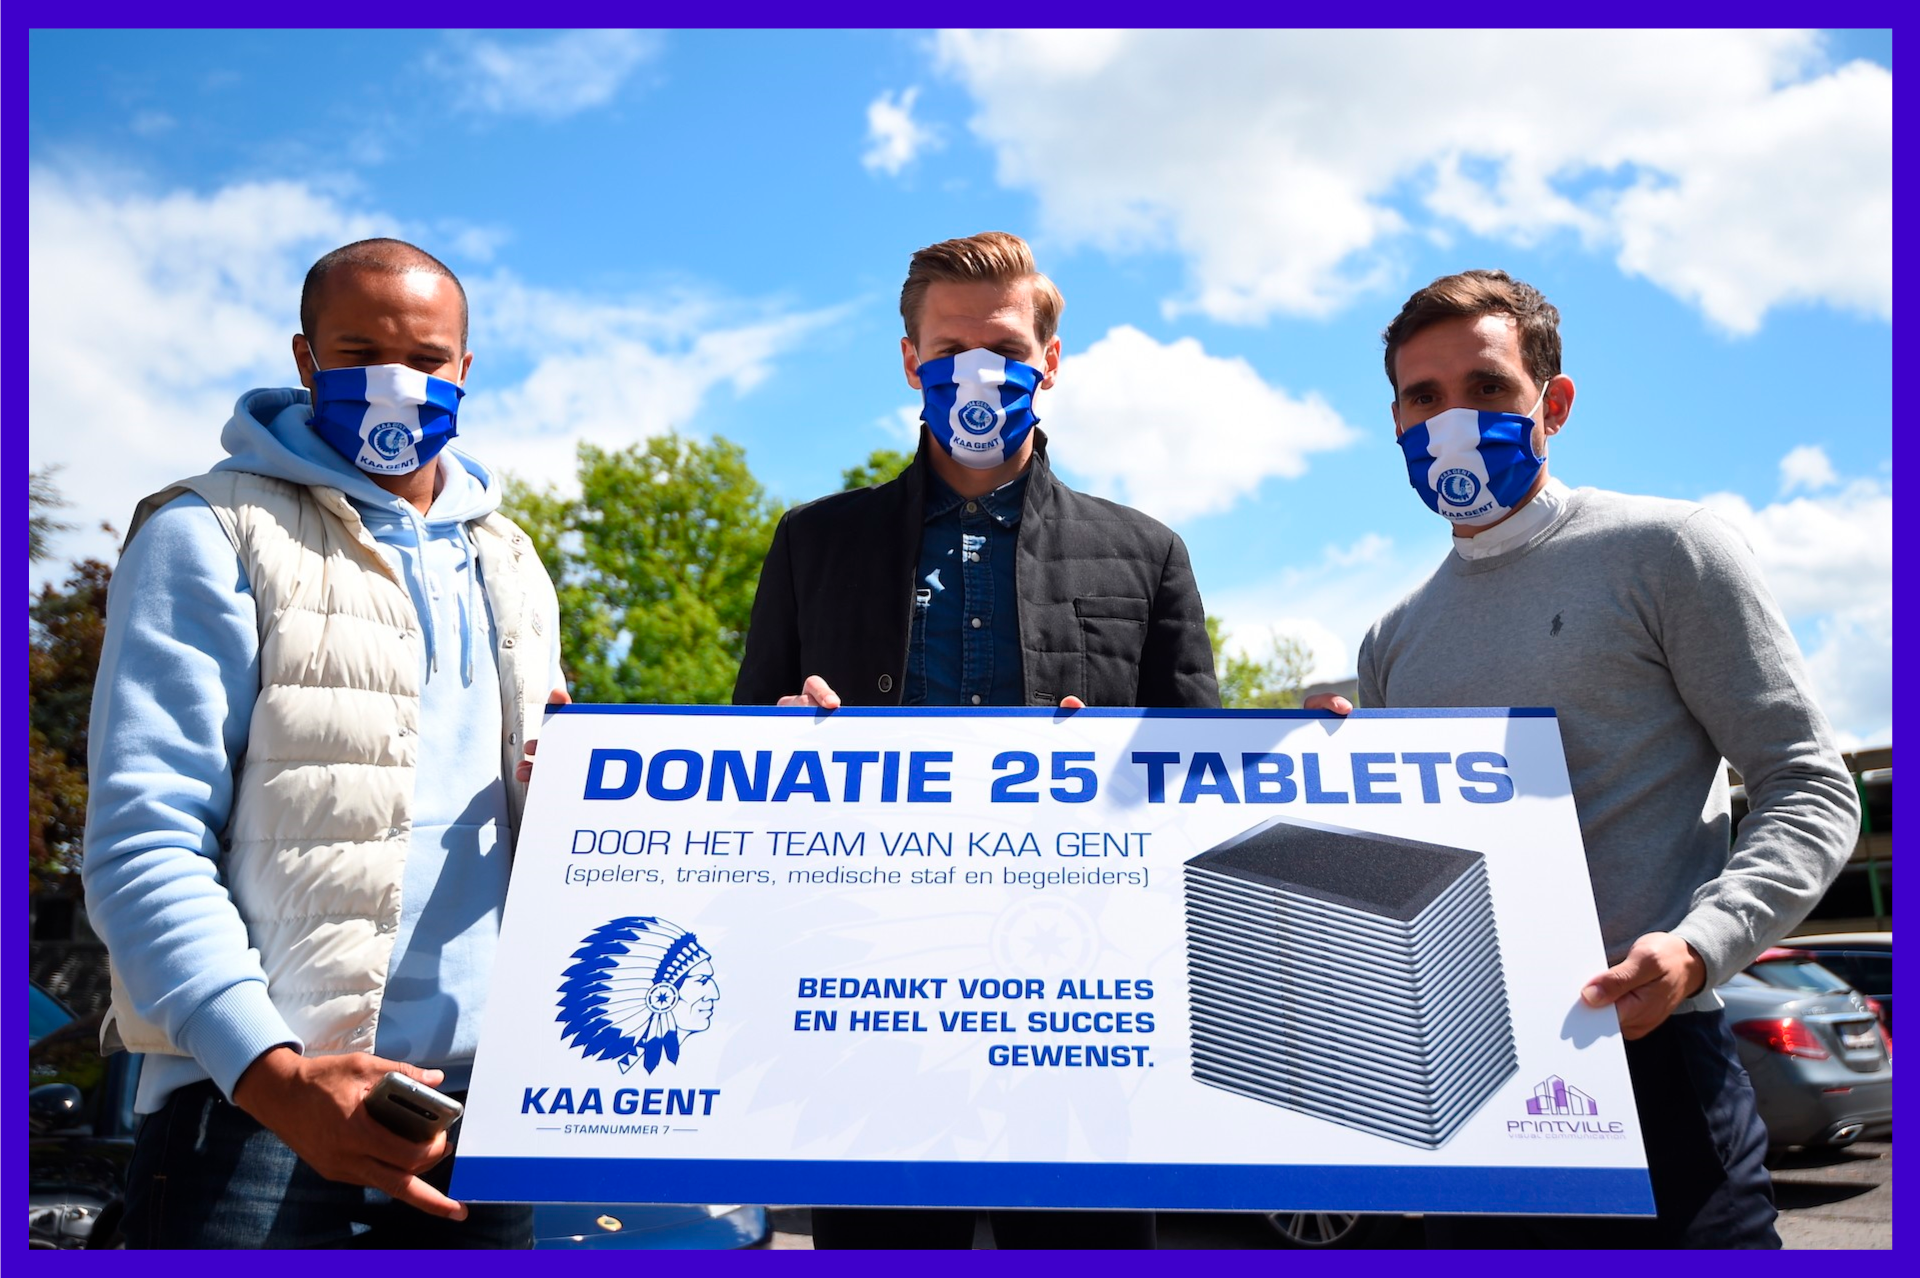 KAA Gent donates 25 tablets to belgian hospitals to lower the workload for people who work in hospitals